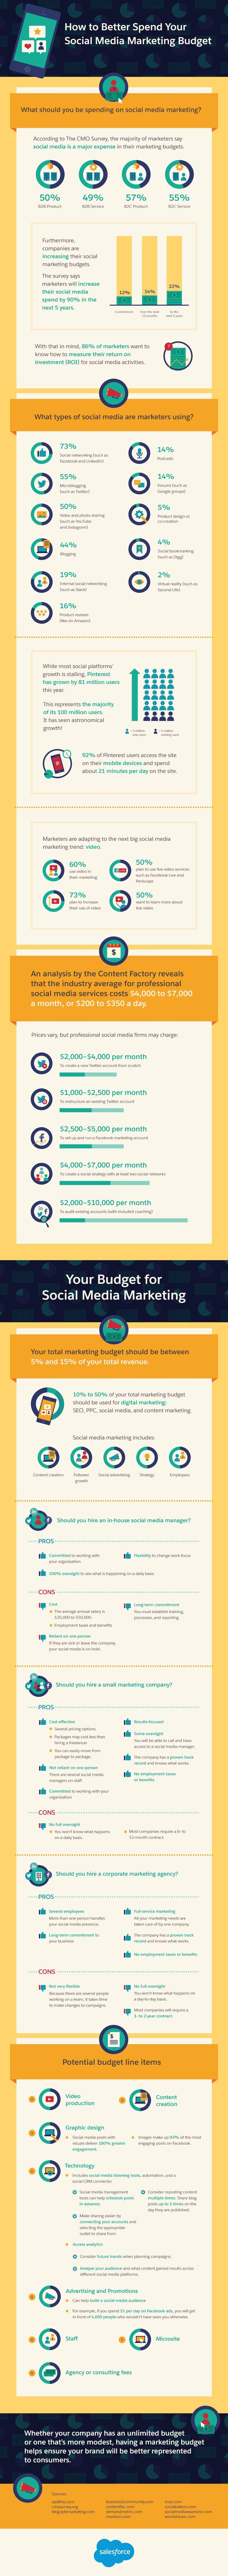 How To Better Spend Your Social Media Marketing Budget Infographic